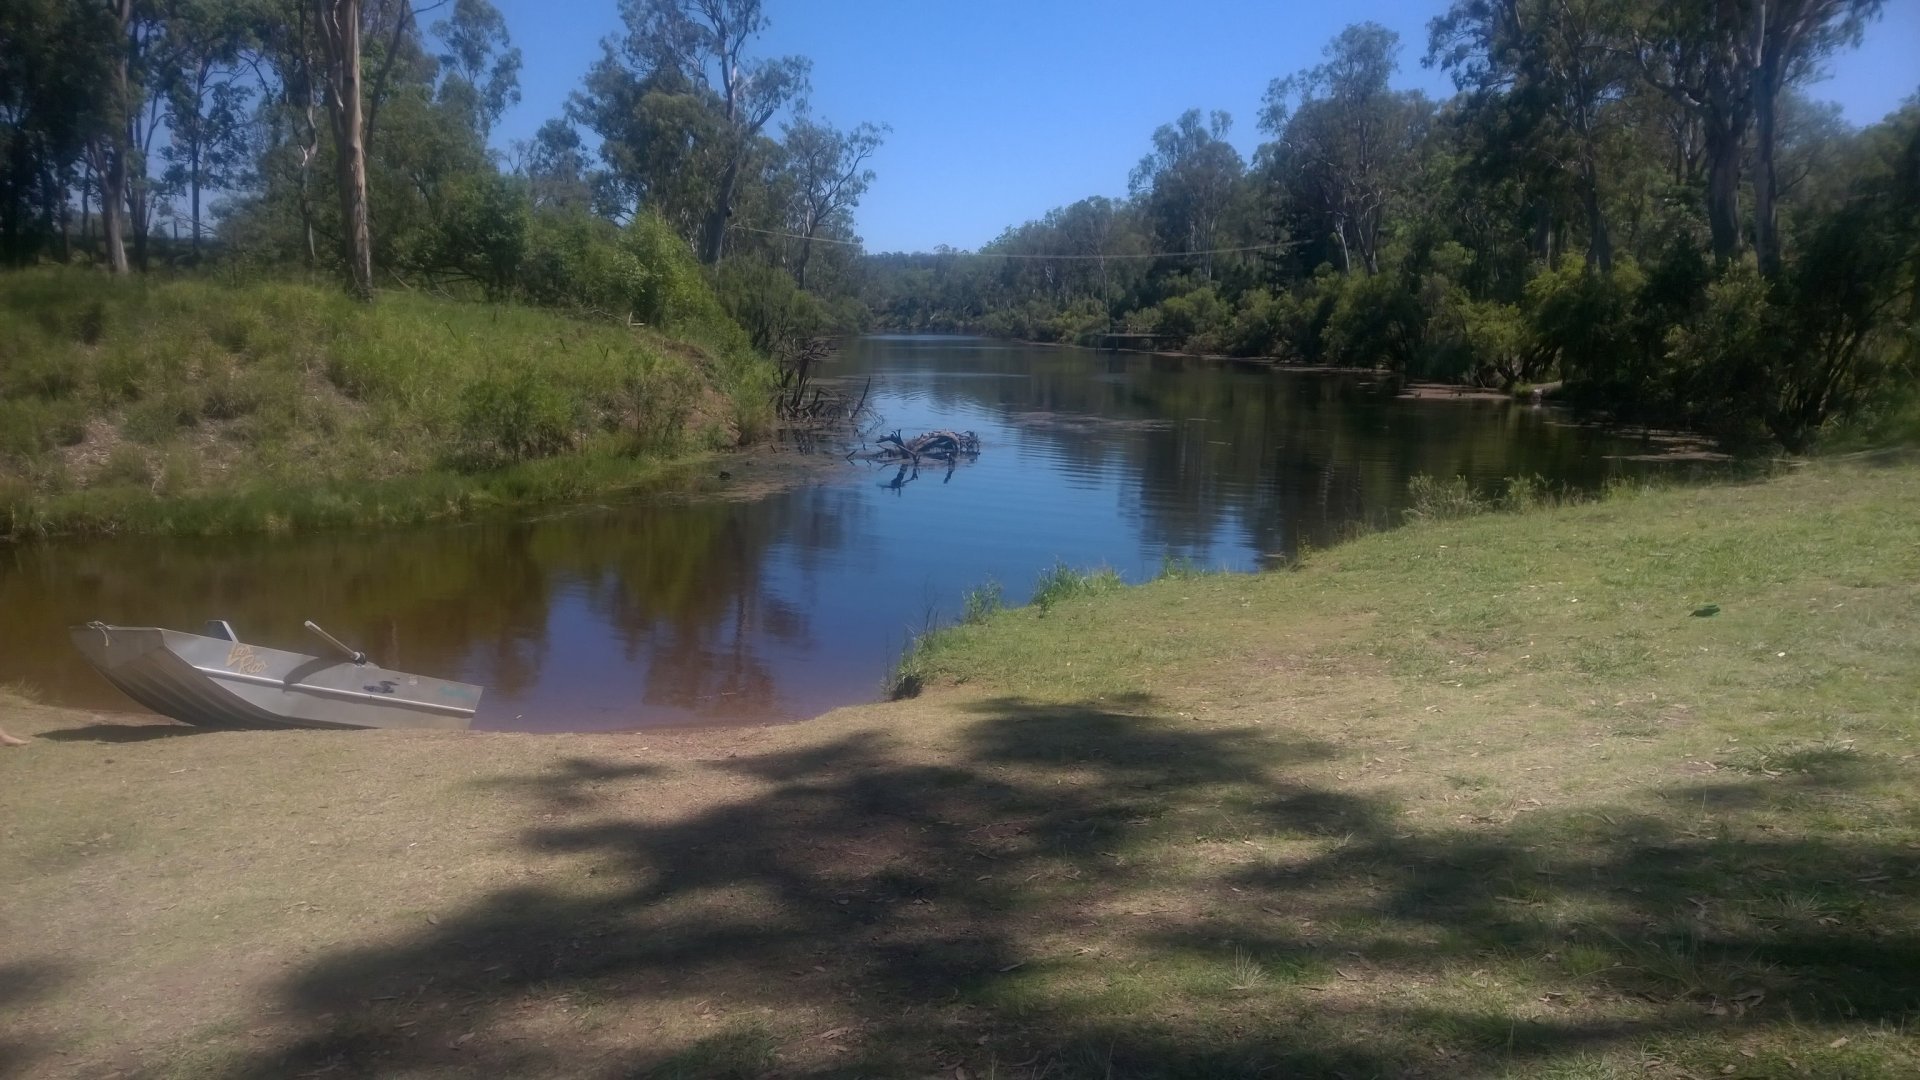 On the banks of Barambah Creek at Fick's Crossing looking up the creek. Fick's Crossing is a nice spot to stop for a break or stay for a while